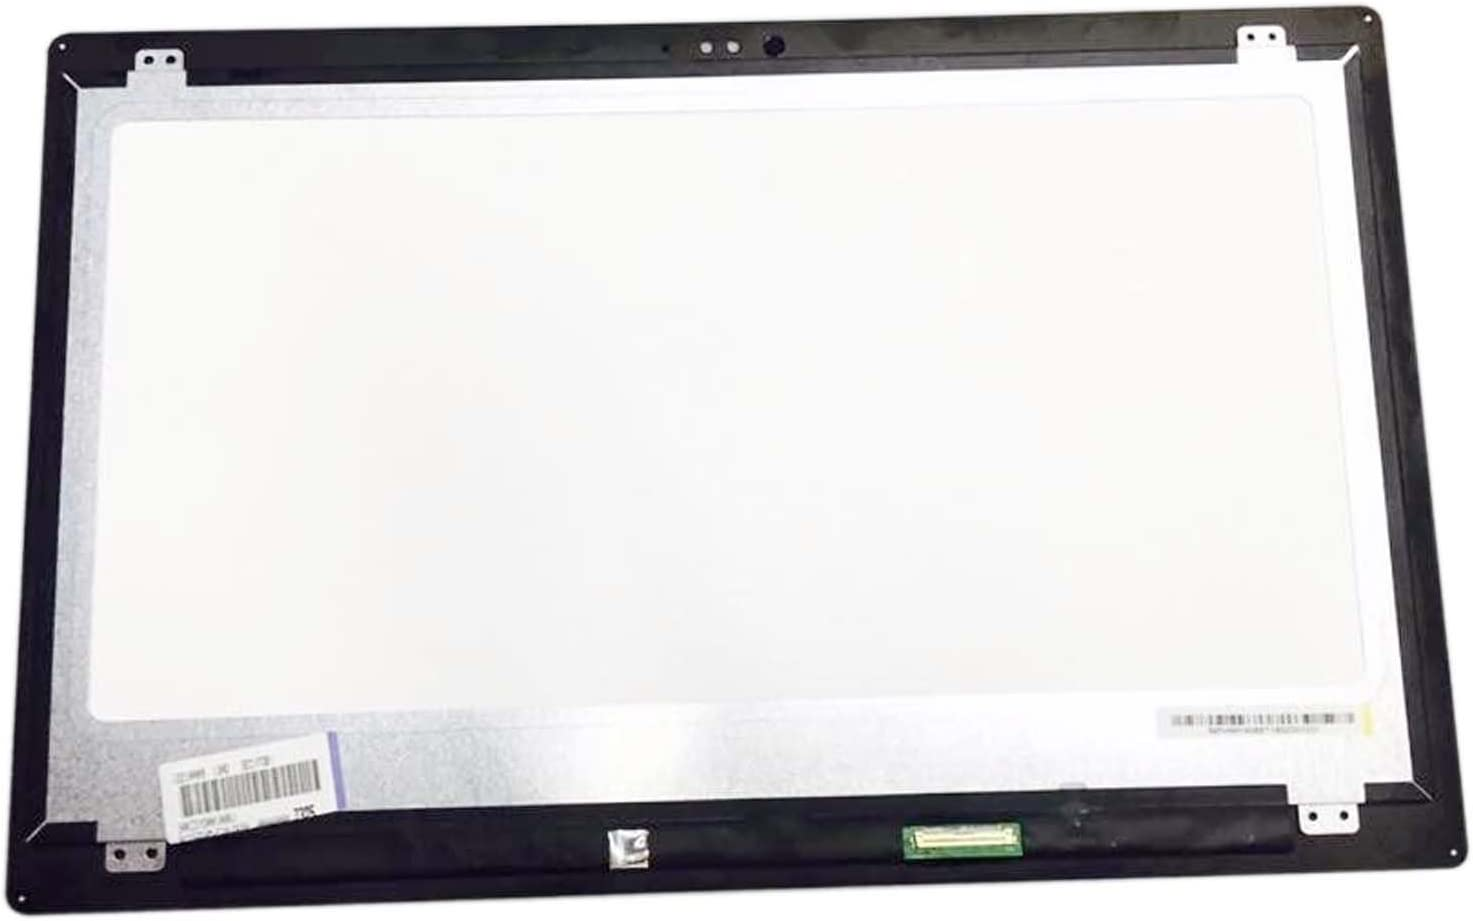 KREPLACEMENT 15.6-Inch Screen Replacement Touch LCD LP156WF7 (SP)(EA) 0063GR for Dell Inspiron 15 7000 2-in-1 Laptop (Non-Bezel)